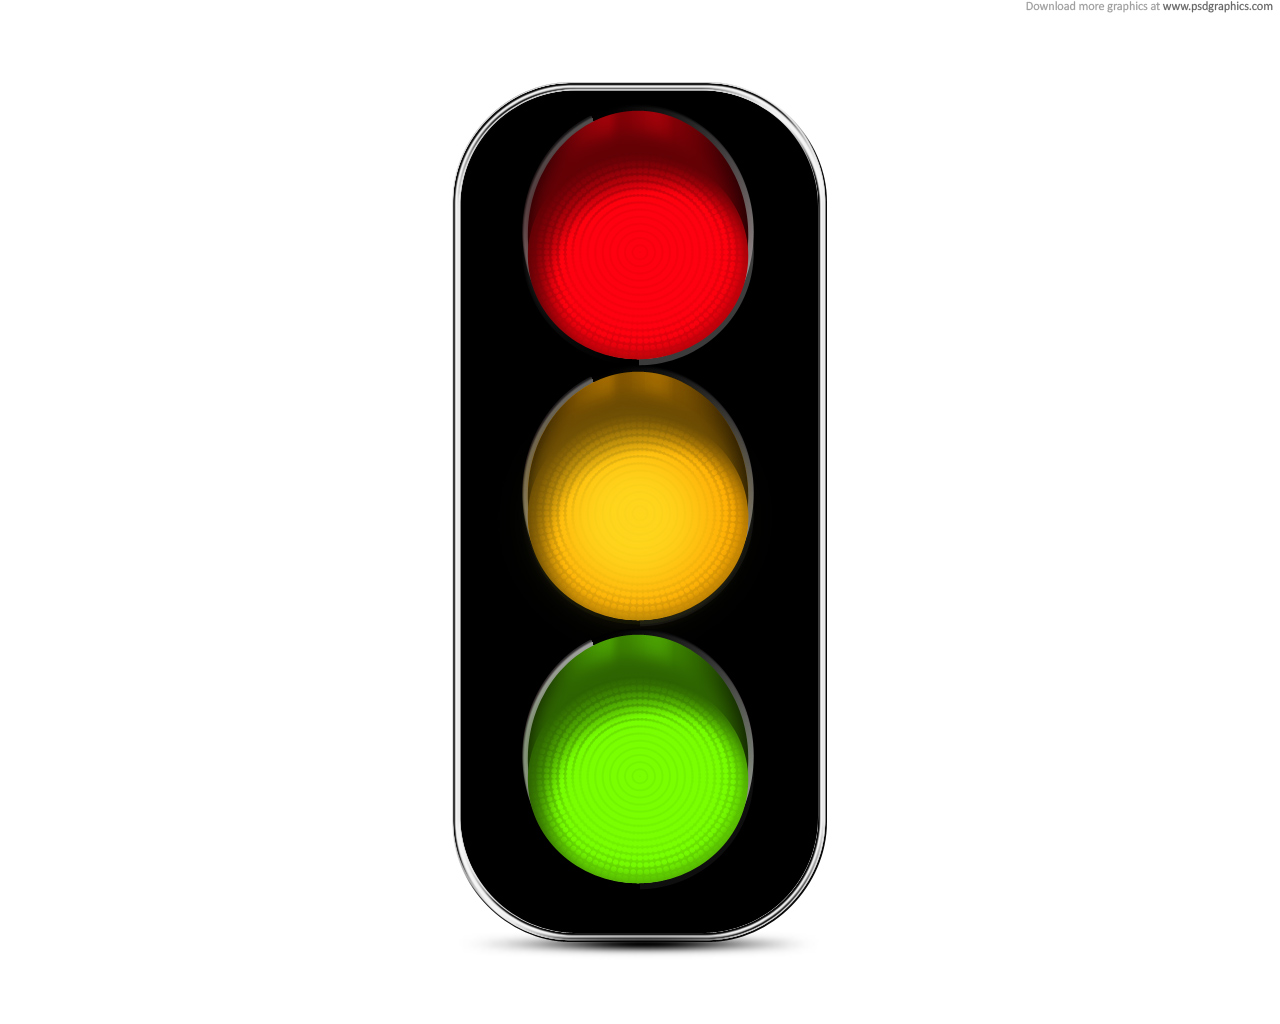 1280x1024 Pictures Of Stop Lights